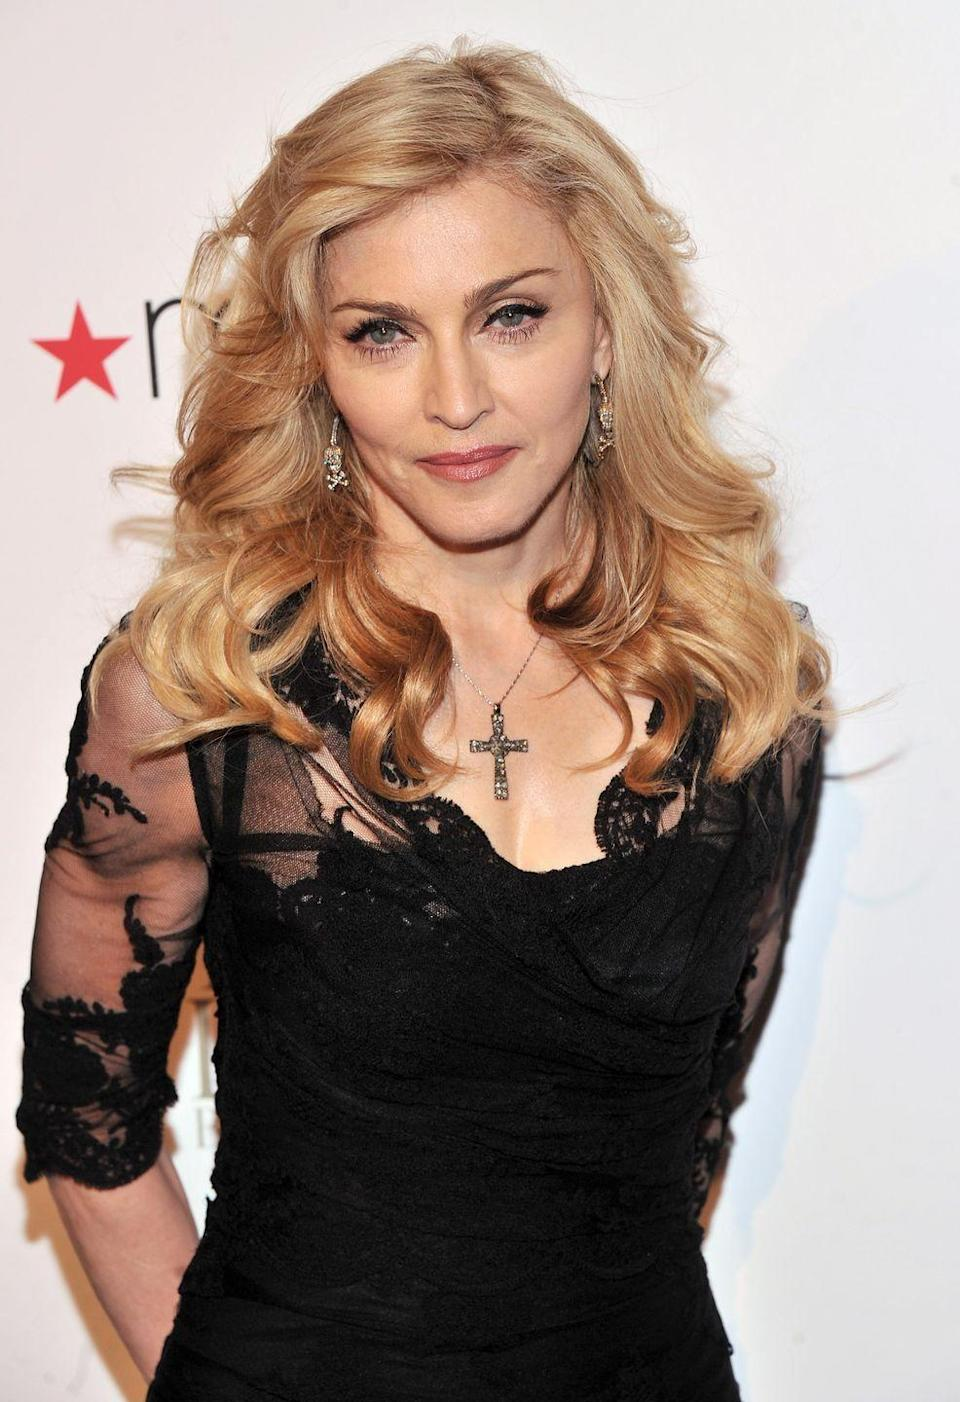 "<p>Madonna has definitely had a memorable career, but the first stranger who probably really remembers Madonna is a customer who encountered the Queen of Pop at Dunkin' Doughnuts. </p><p>The Grammy winner reportedly worked there before becoming an international icon—but, according to <a href=""https://www.facebook.com/cnbc/posts/madonna-was-fired-from-dunkin-donuts-for-squirting-jelly-at-a-customer/10156719983849369/"" rel=""nofollow noopener"" target=""_blank"" data-ylk=""slk:CNBC"" class=""link rapid-noclick-resp"">CNBC</a>, she was fired for squirting jelly at a customer. </p>"